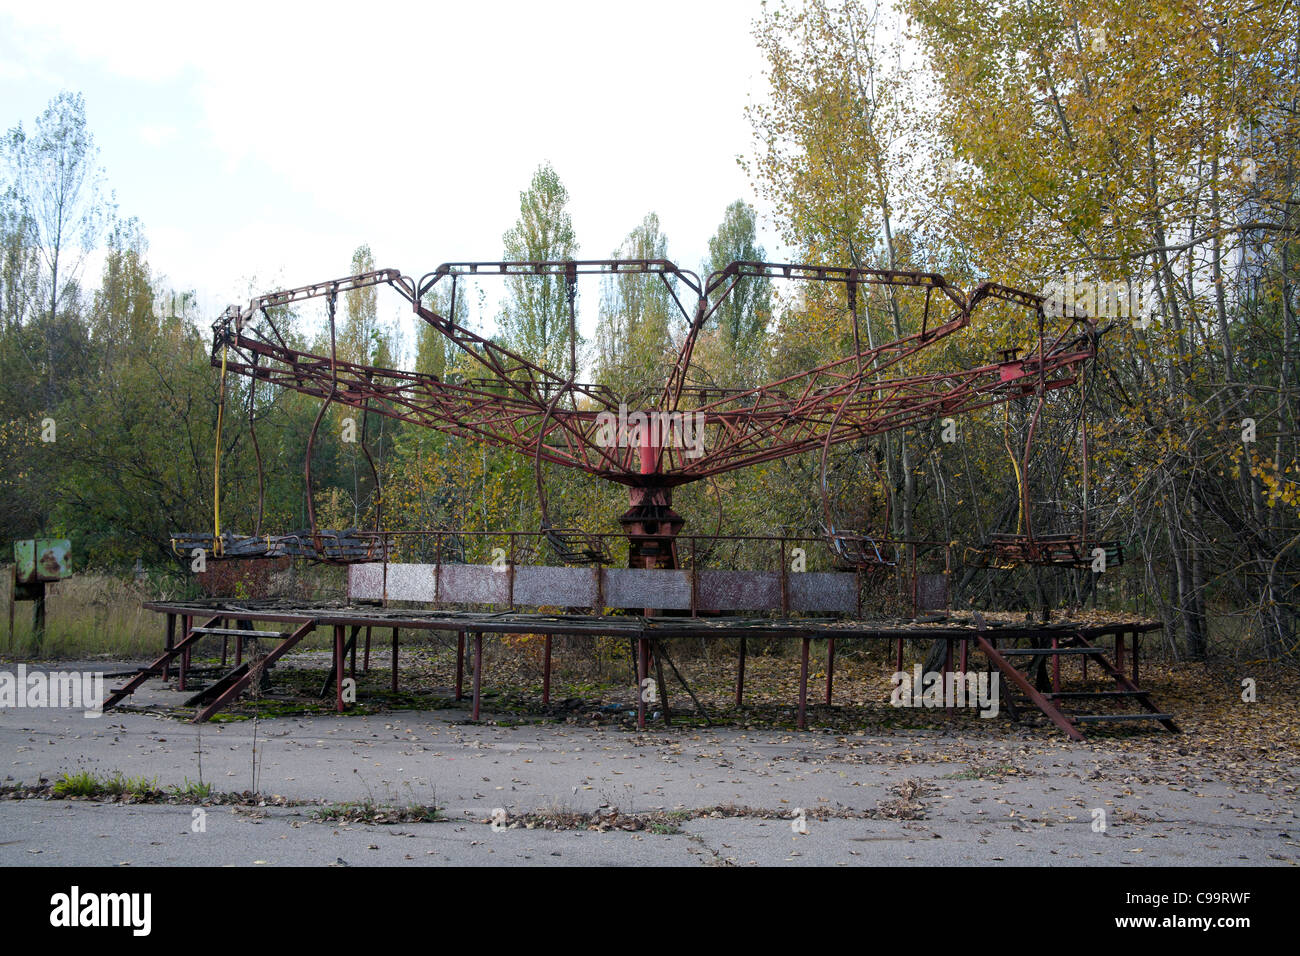 Carousel at the Pripyat Amusement Park, Pripyat Amusement Park Pripyat Chernobyl exclusion zone Ukraine - Stock Image